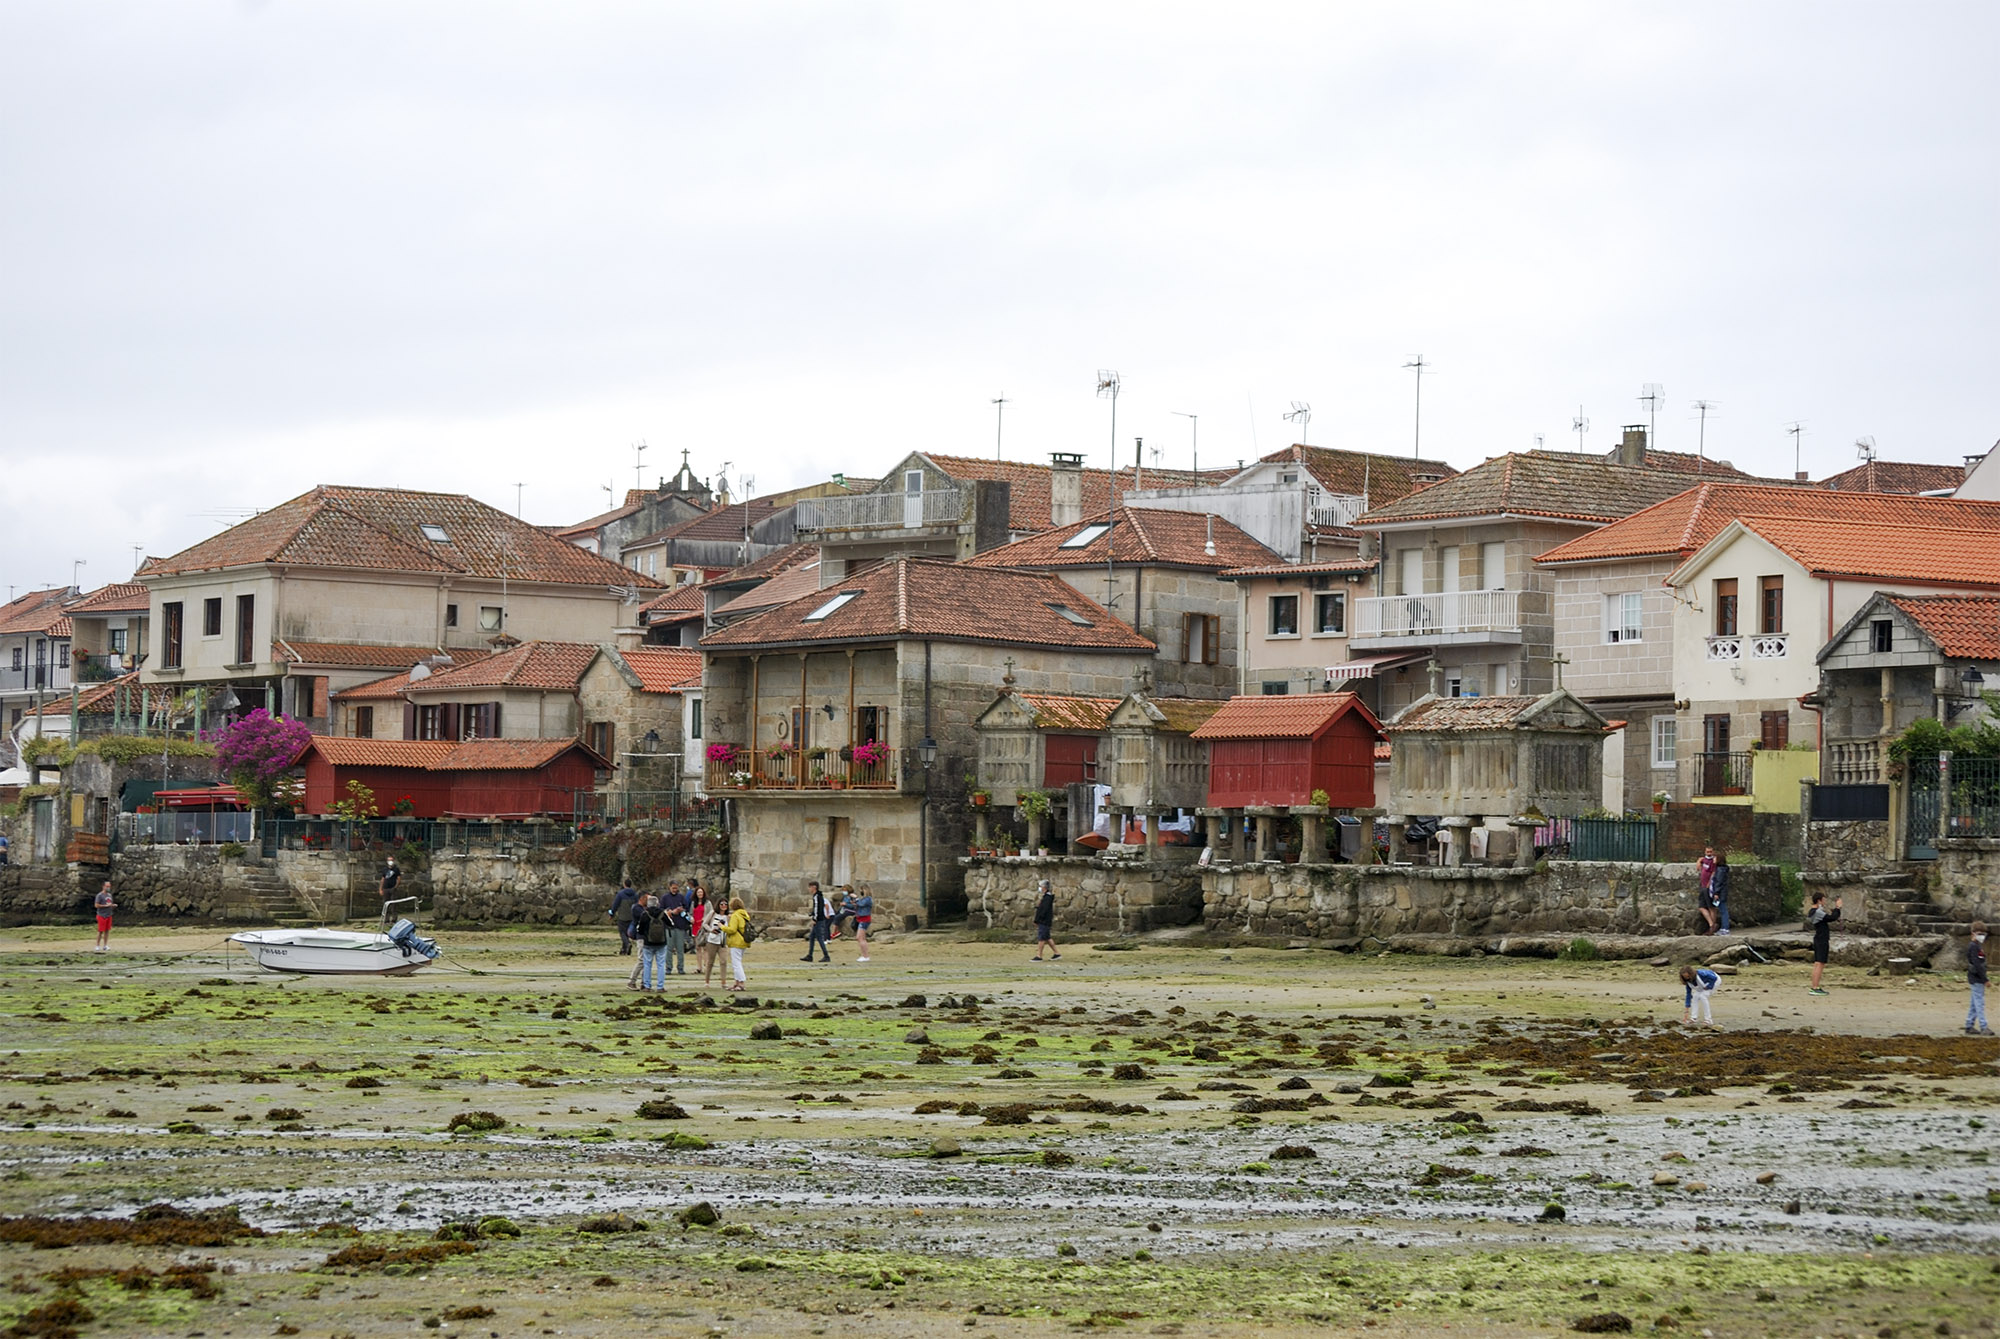 What is there to see and do in Galicia?